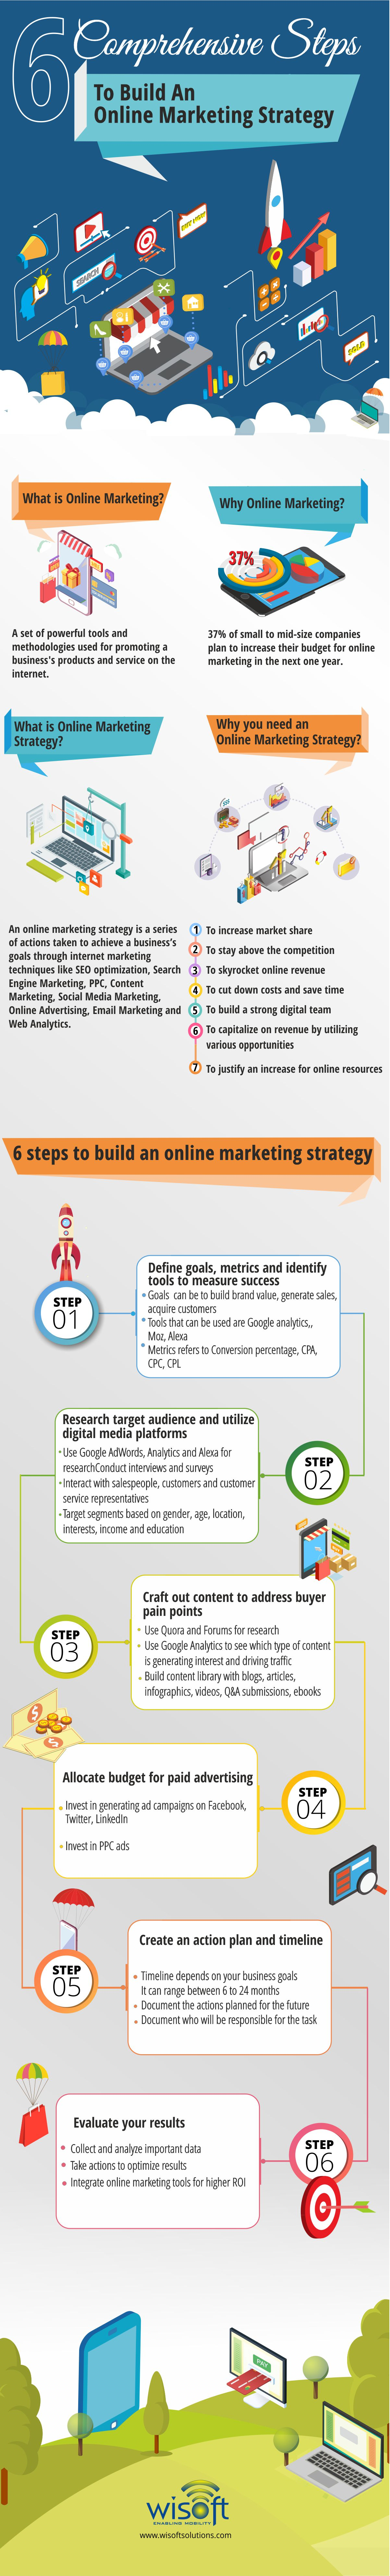 build an online marketing strategy